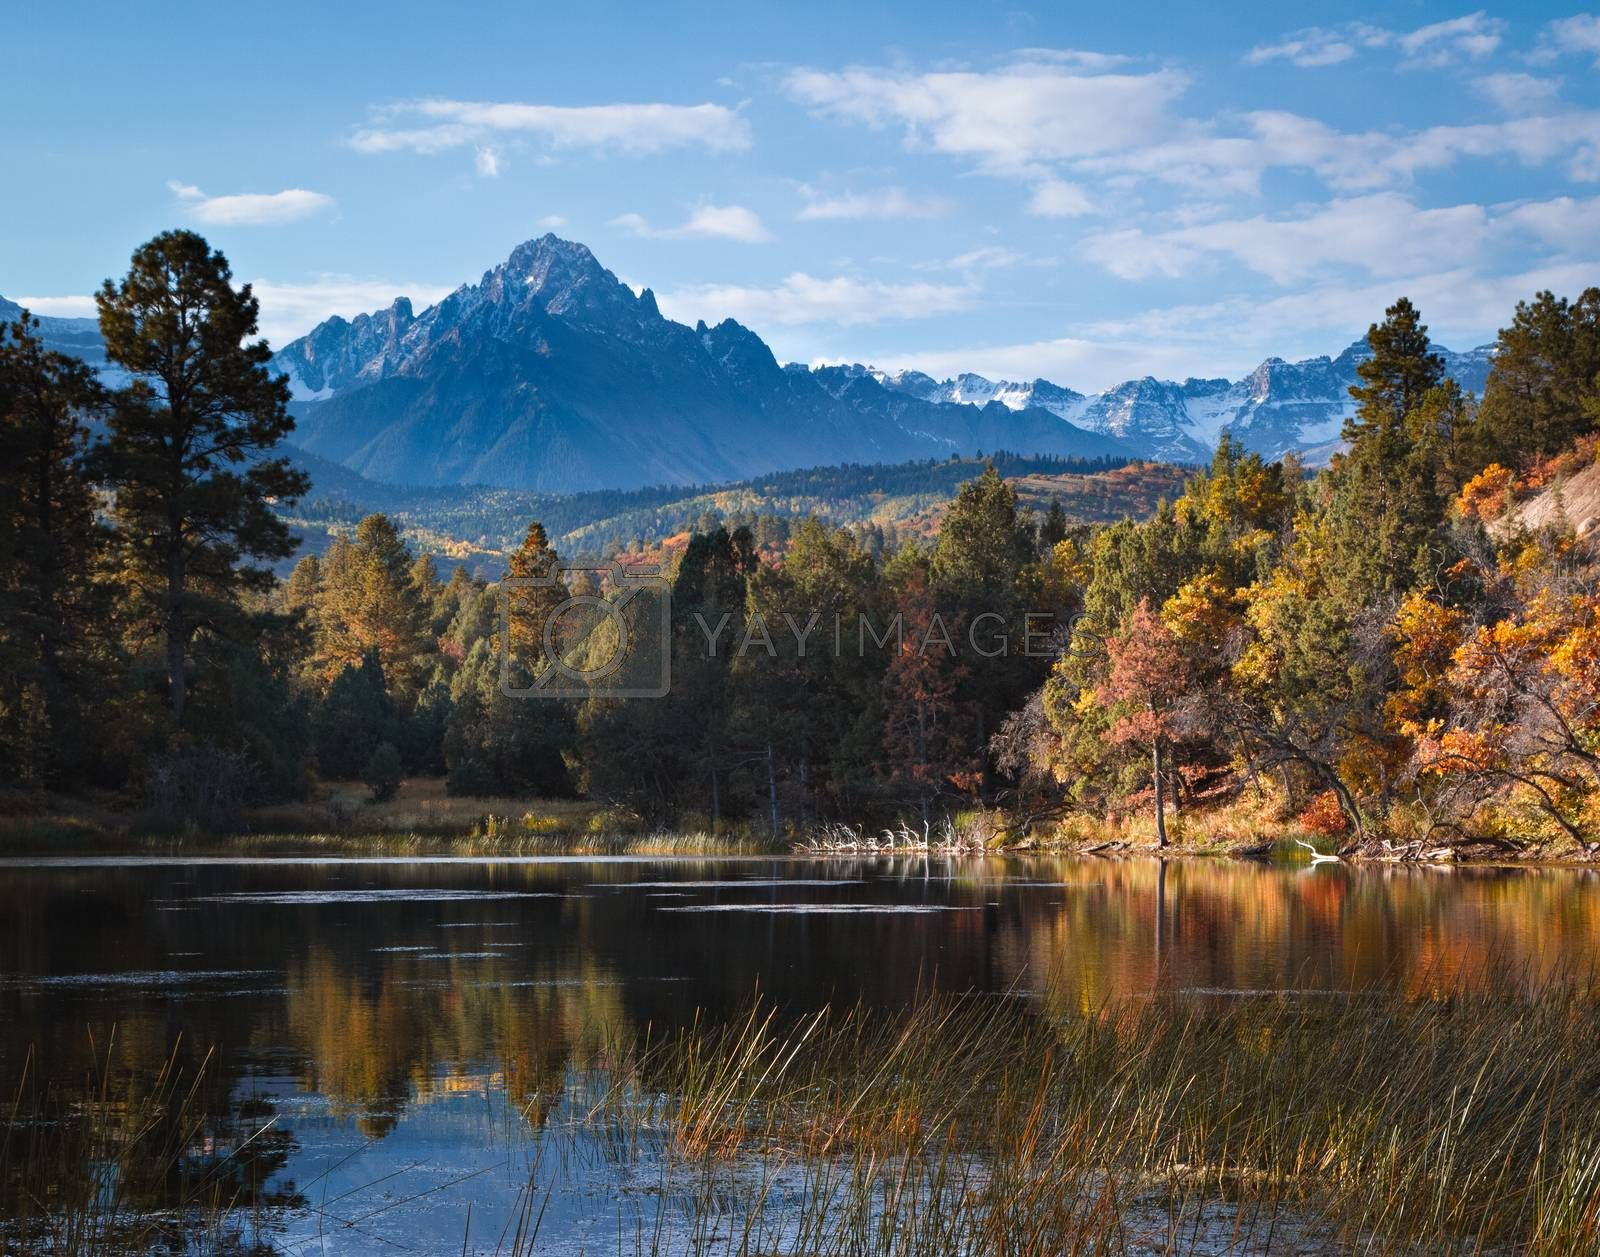 Colorado landscapes. The scenic beauty of the Colorado Rocky Mountains.